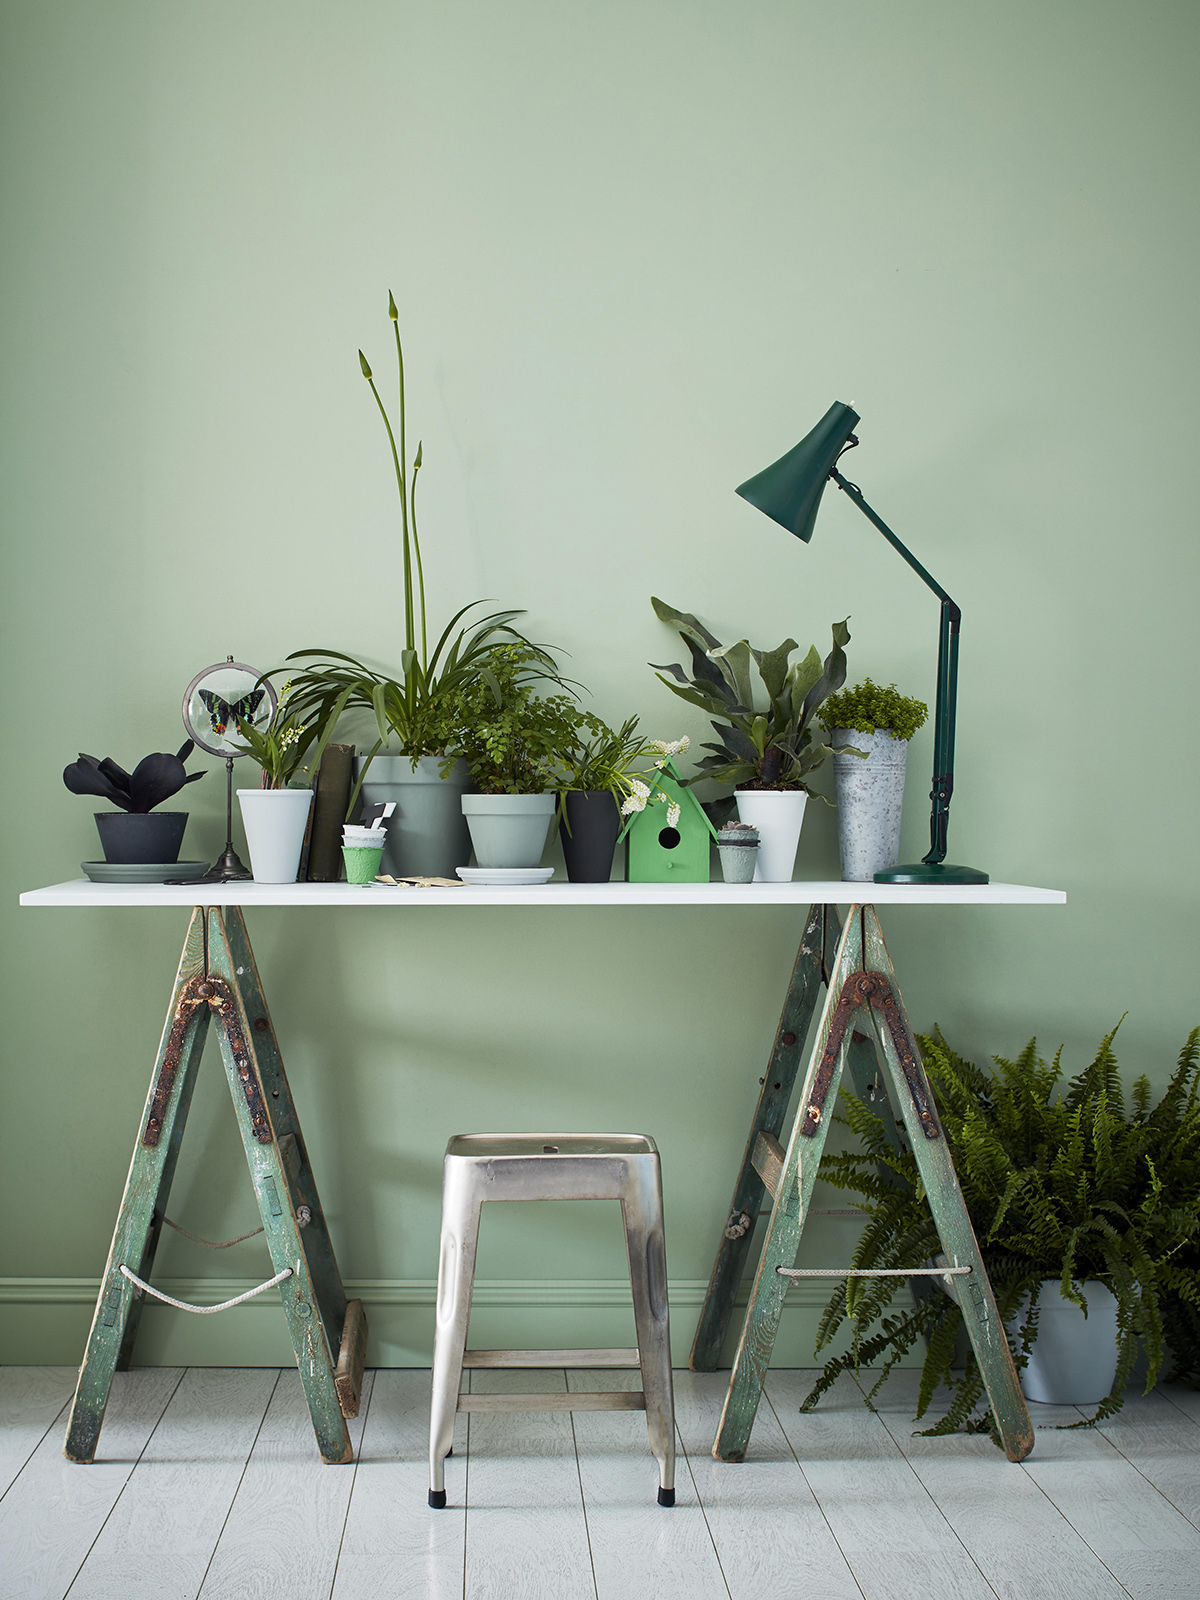 Latest crush for interior design is Mint green for it's fresh, uplifting tone. This pastel shade looks modern on all walls, withfoliage and potted plants for a botanical trend. Mint is set to be a key colour trend this year and well into 2020. Check out the blog for top tips and inspiration on using this hue. #sophierobinson #mint #colourcrush #lovecolour